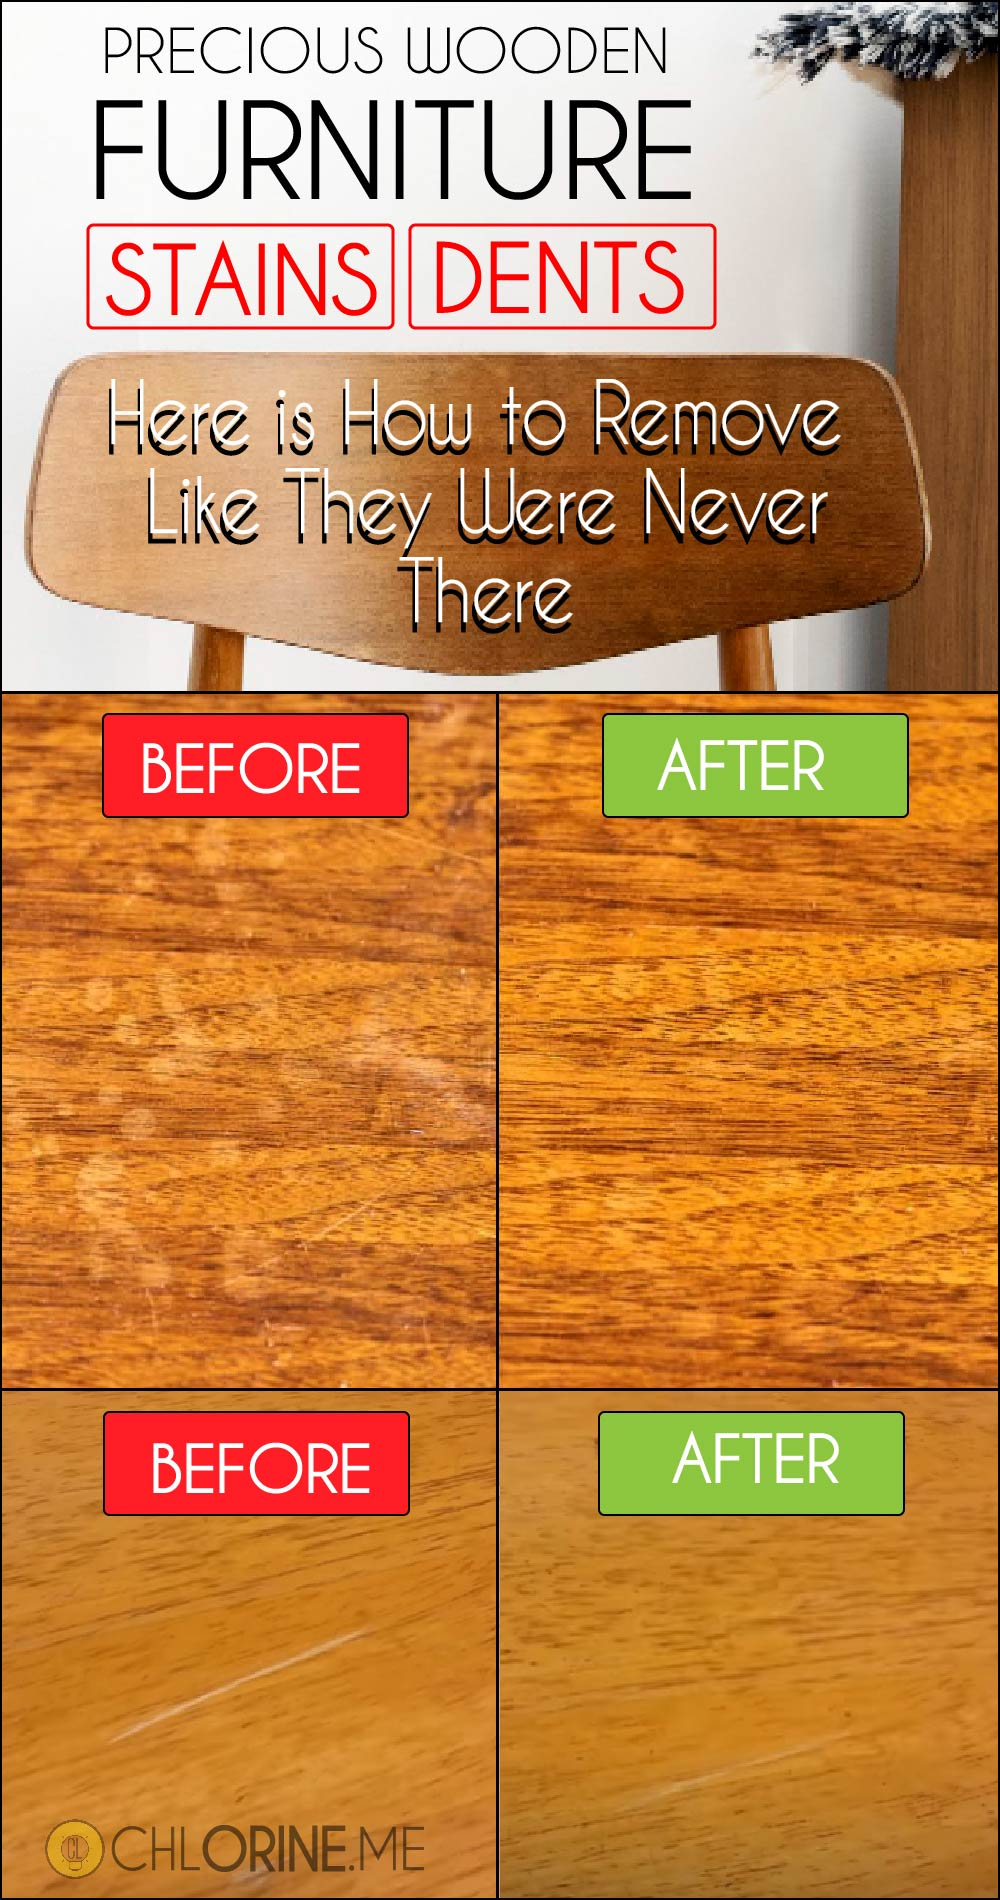 how to remove wooden furniture stains wood dents